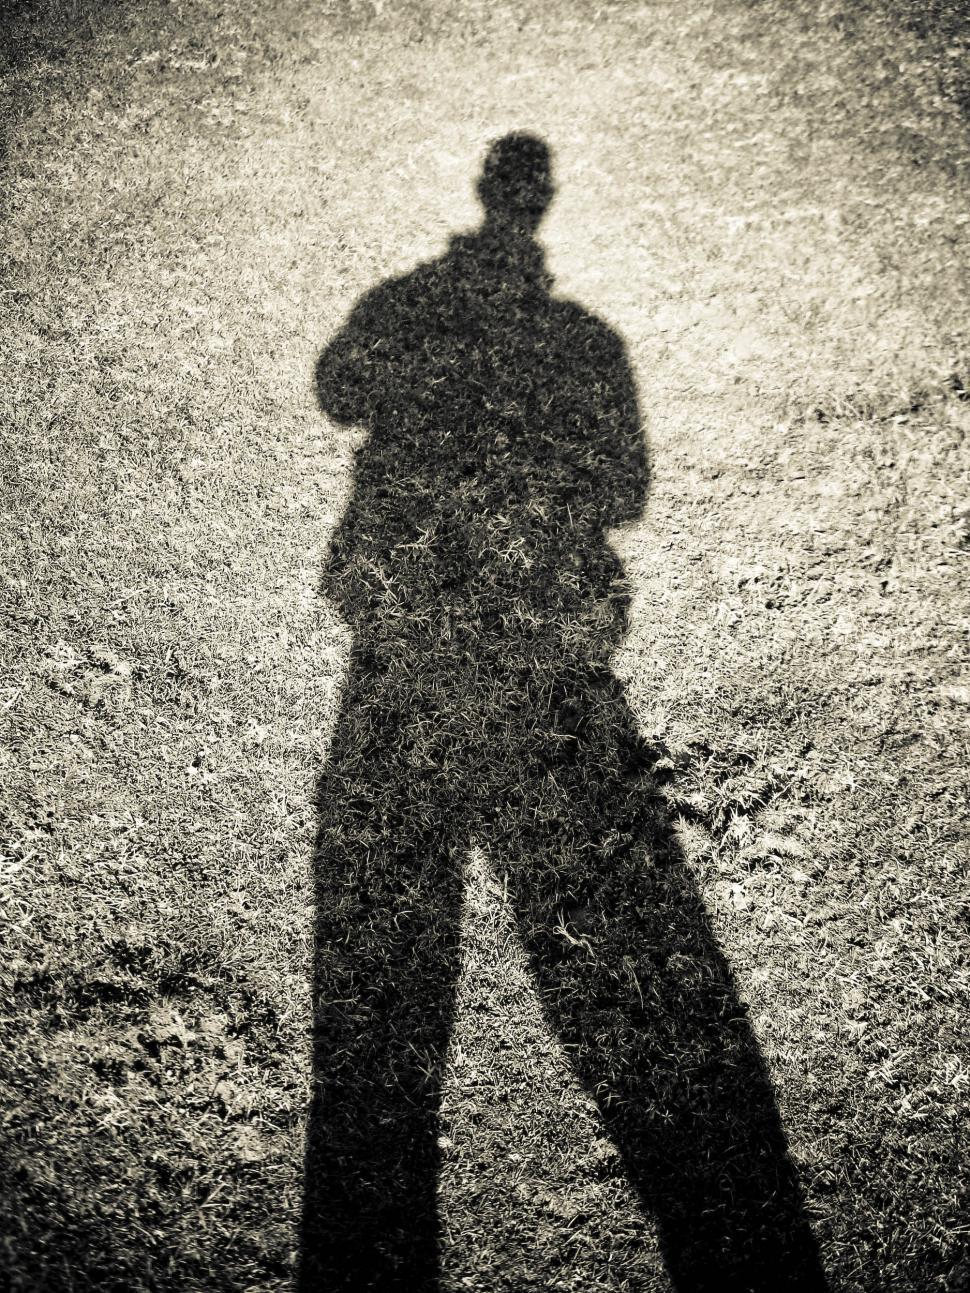 Download Free Stock HD Photo of one person shadow Online